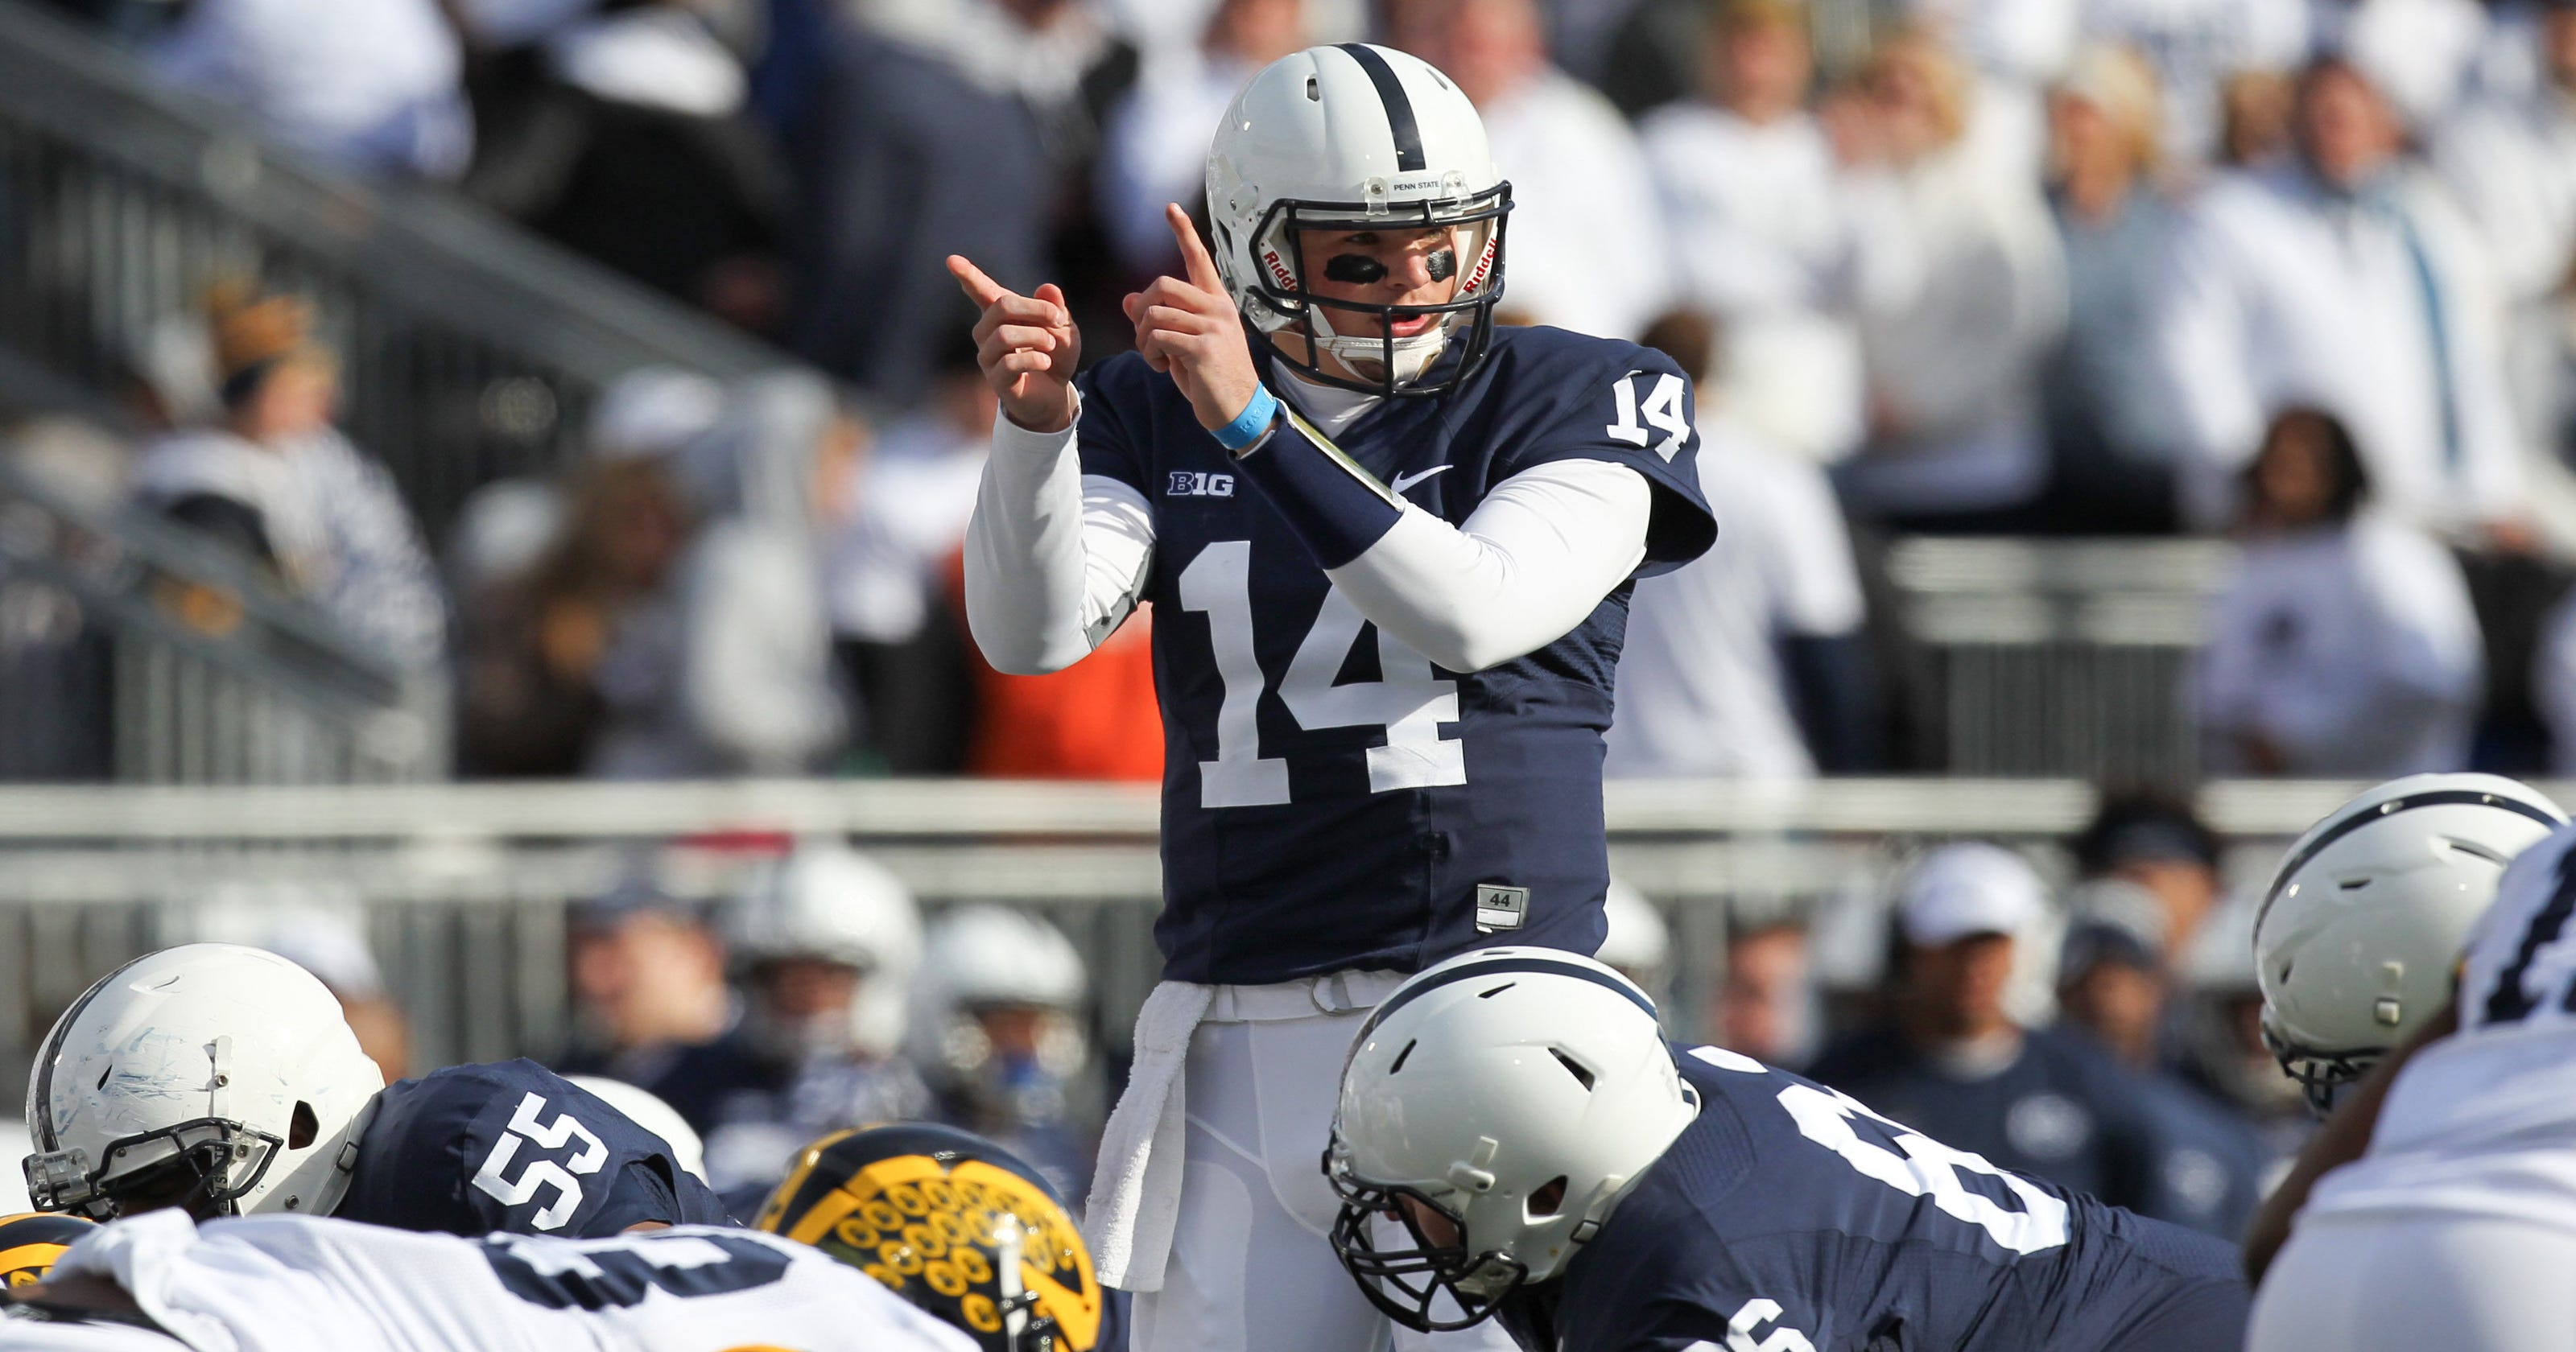 636d0e9c441 Penn State writer: Can that OL keep Christian Hackenberg upright?